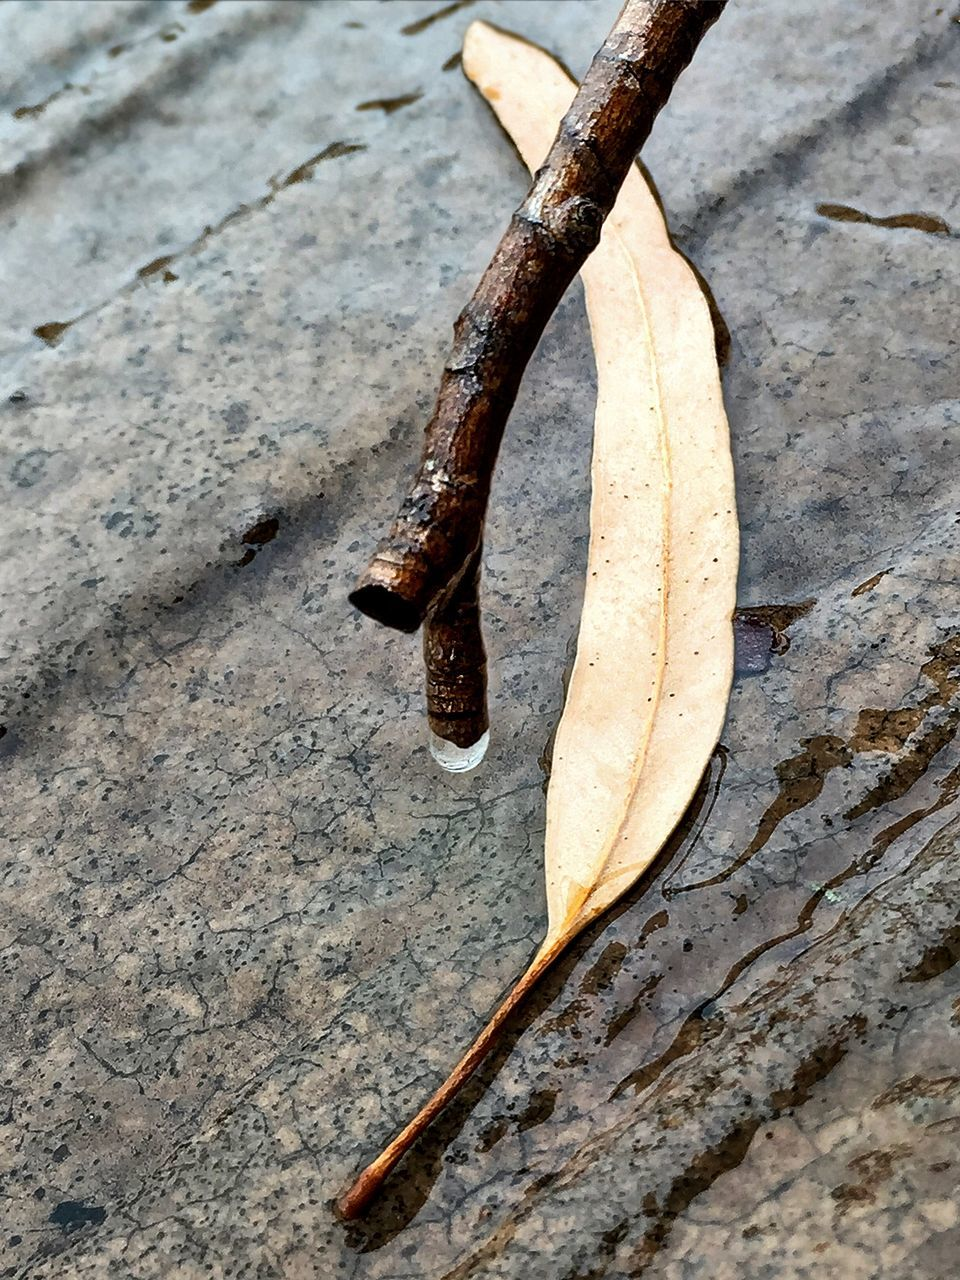 High Angle View Of Leaf On Wet Concrete During Monsoon